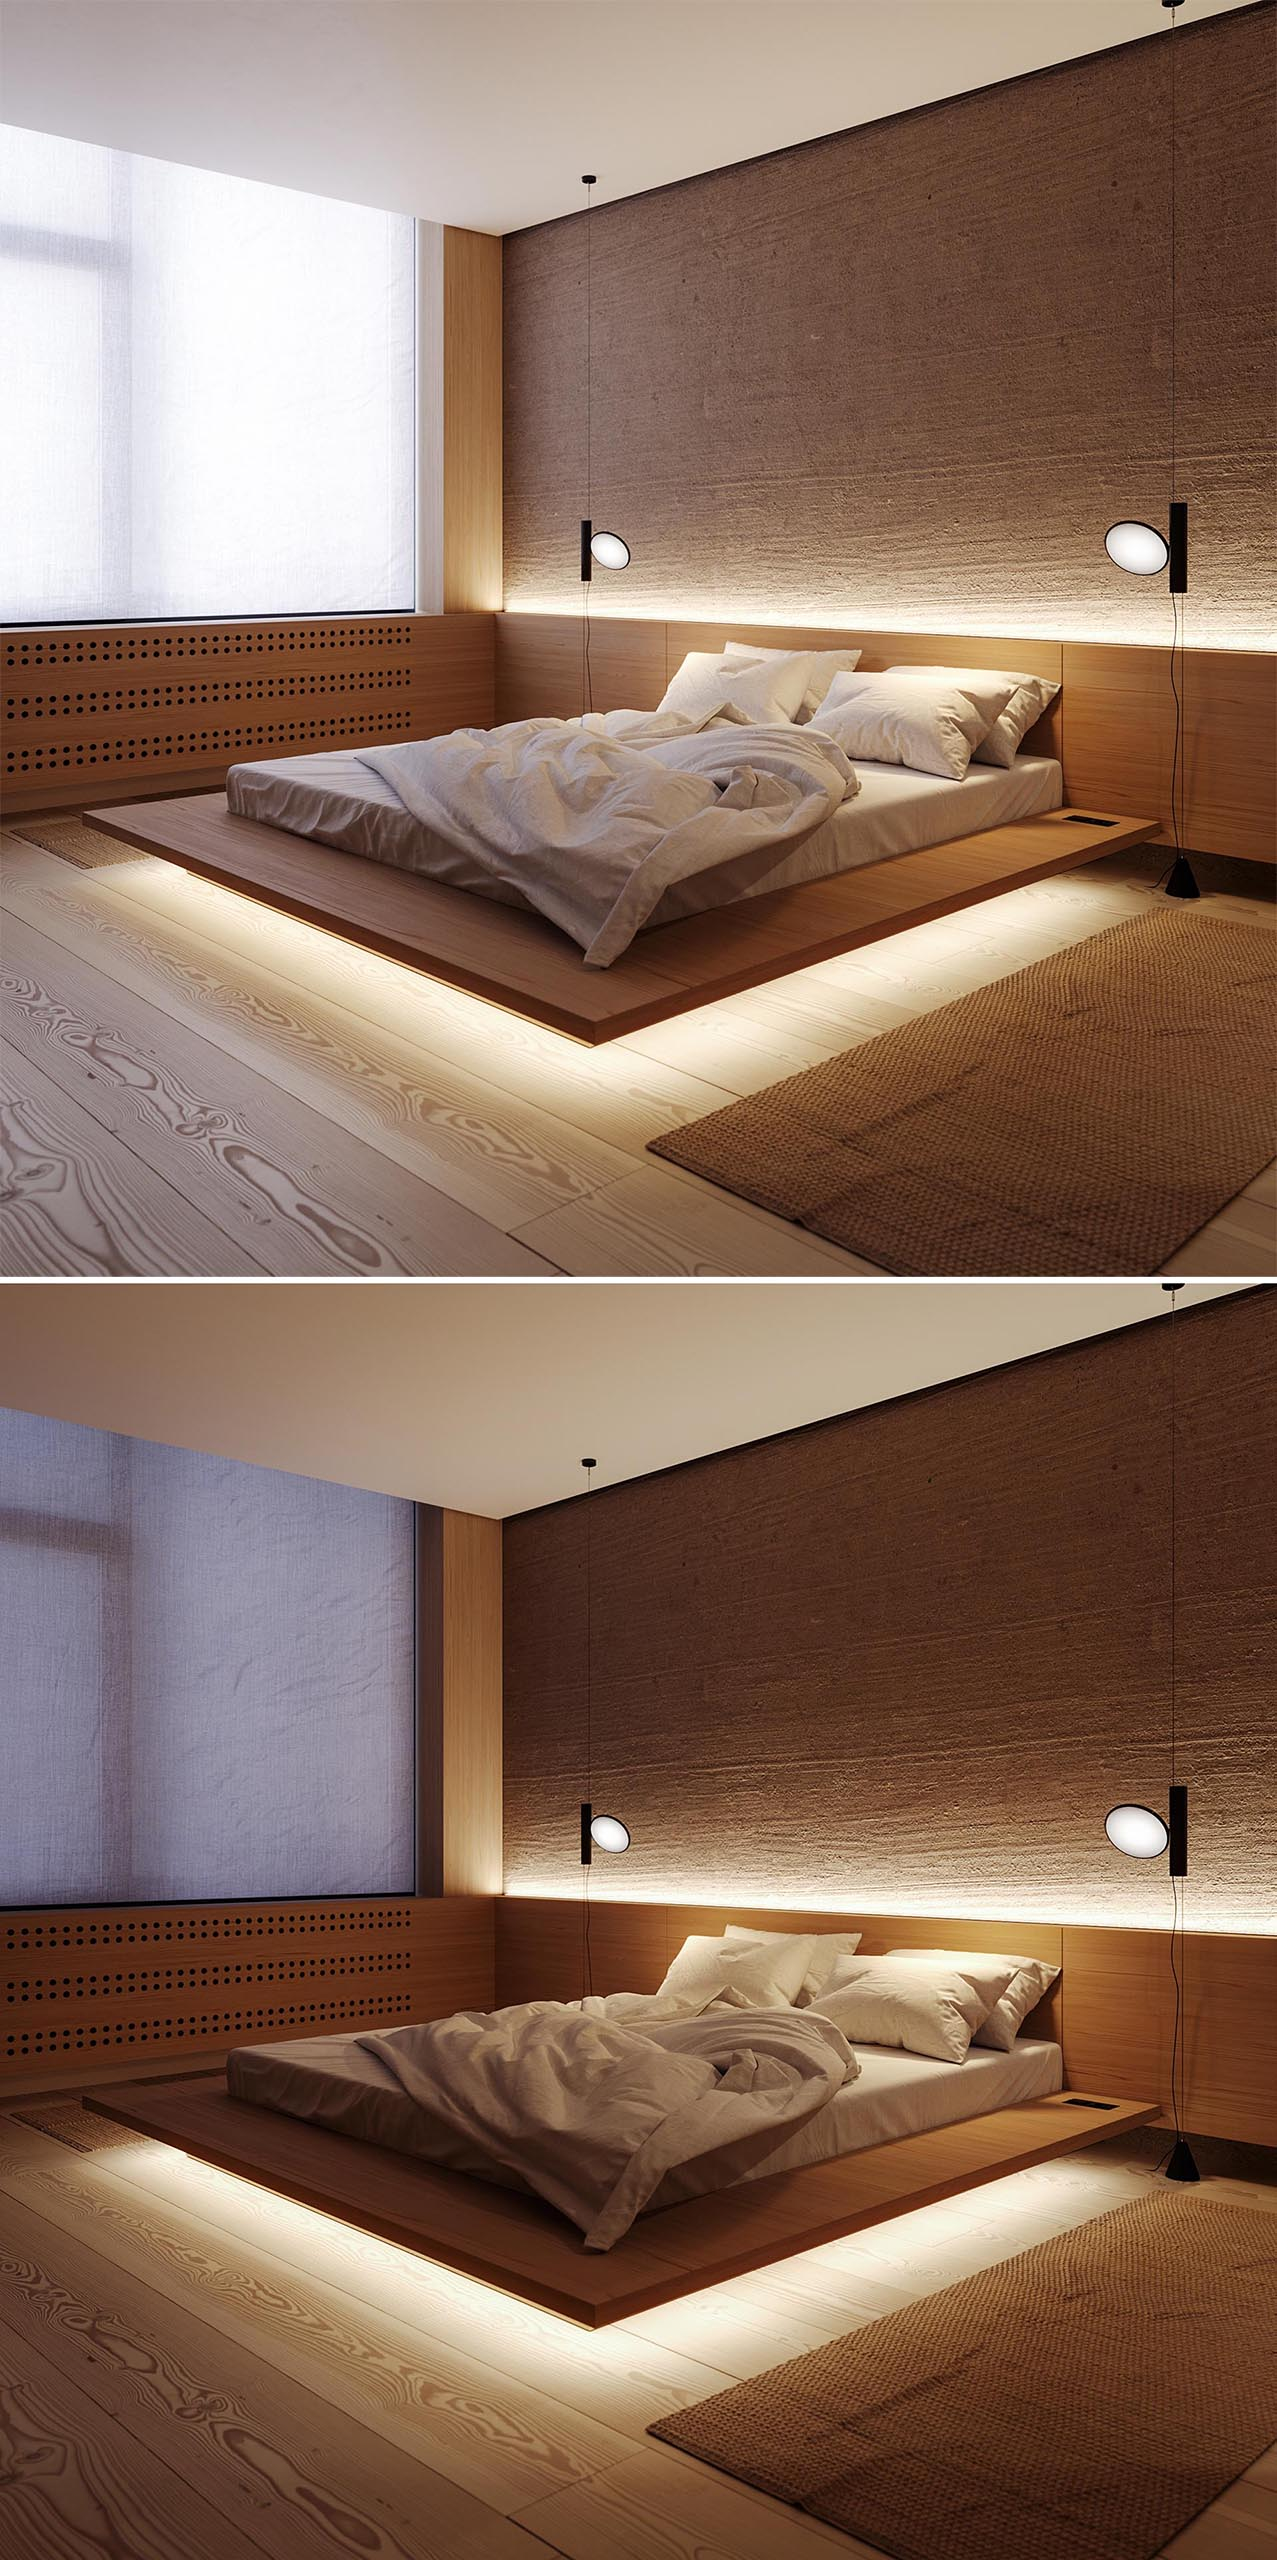 A modern bedroom with LED lighting that highlights the headboard and gives the bed the appearance of floating.